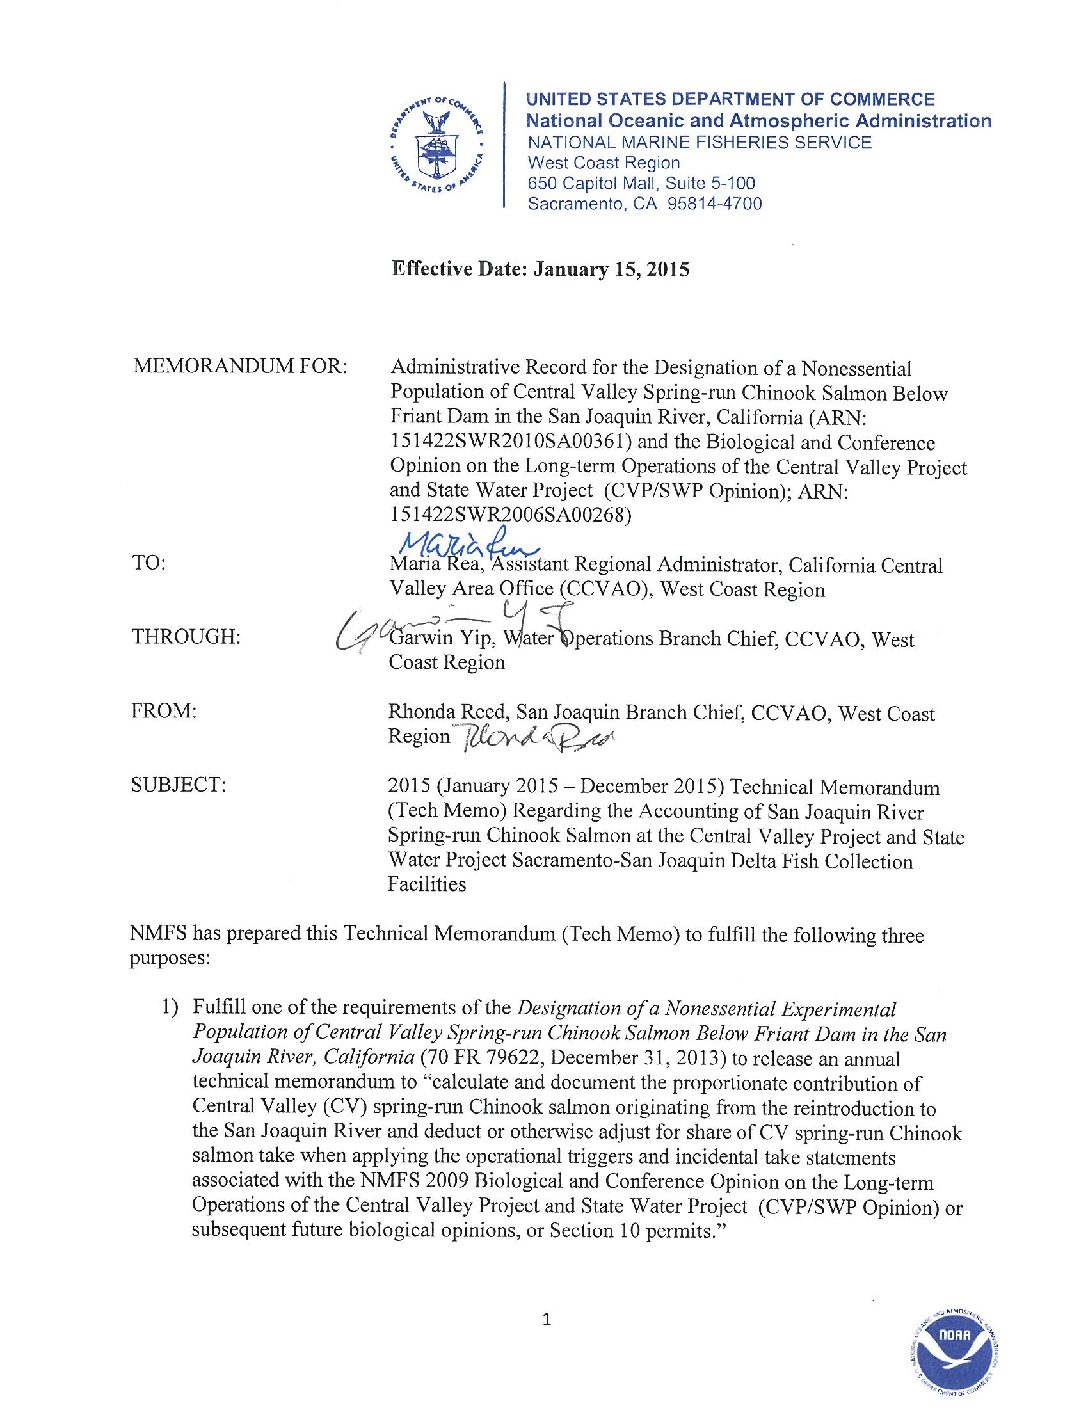 2015 Technical Memorandum Regarding the Accounting of San Joaquin River Spring-run Chinook Salmon at the Central Valley Project and State Water Project Sacramento-San Joaquin Delta Fish Collection Facilities